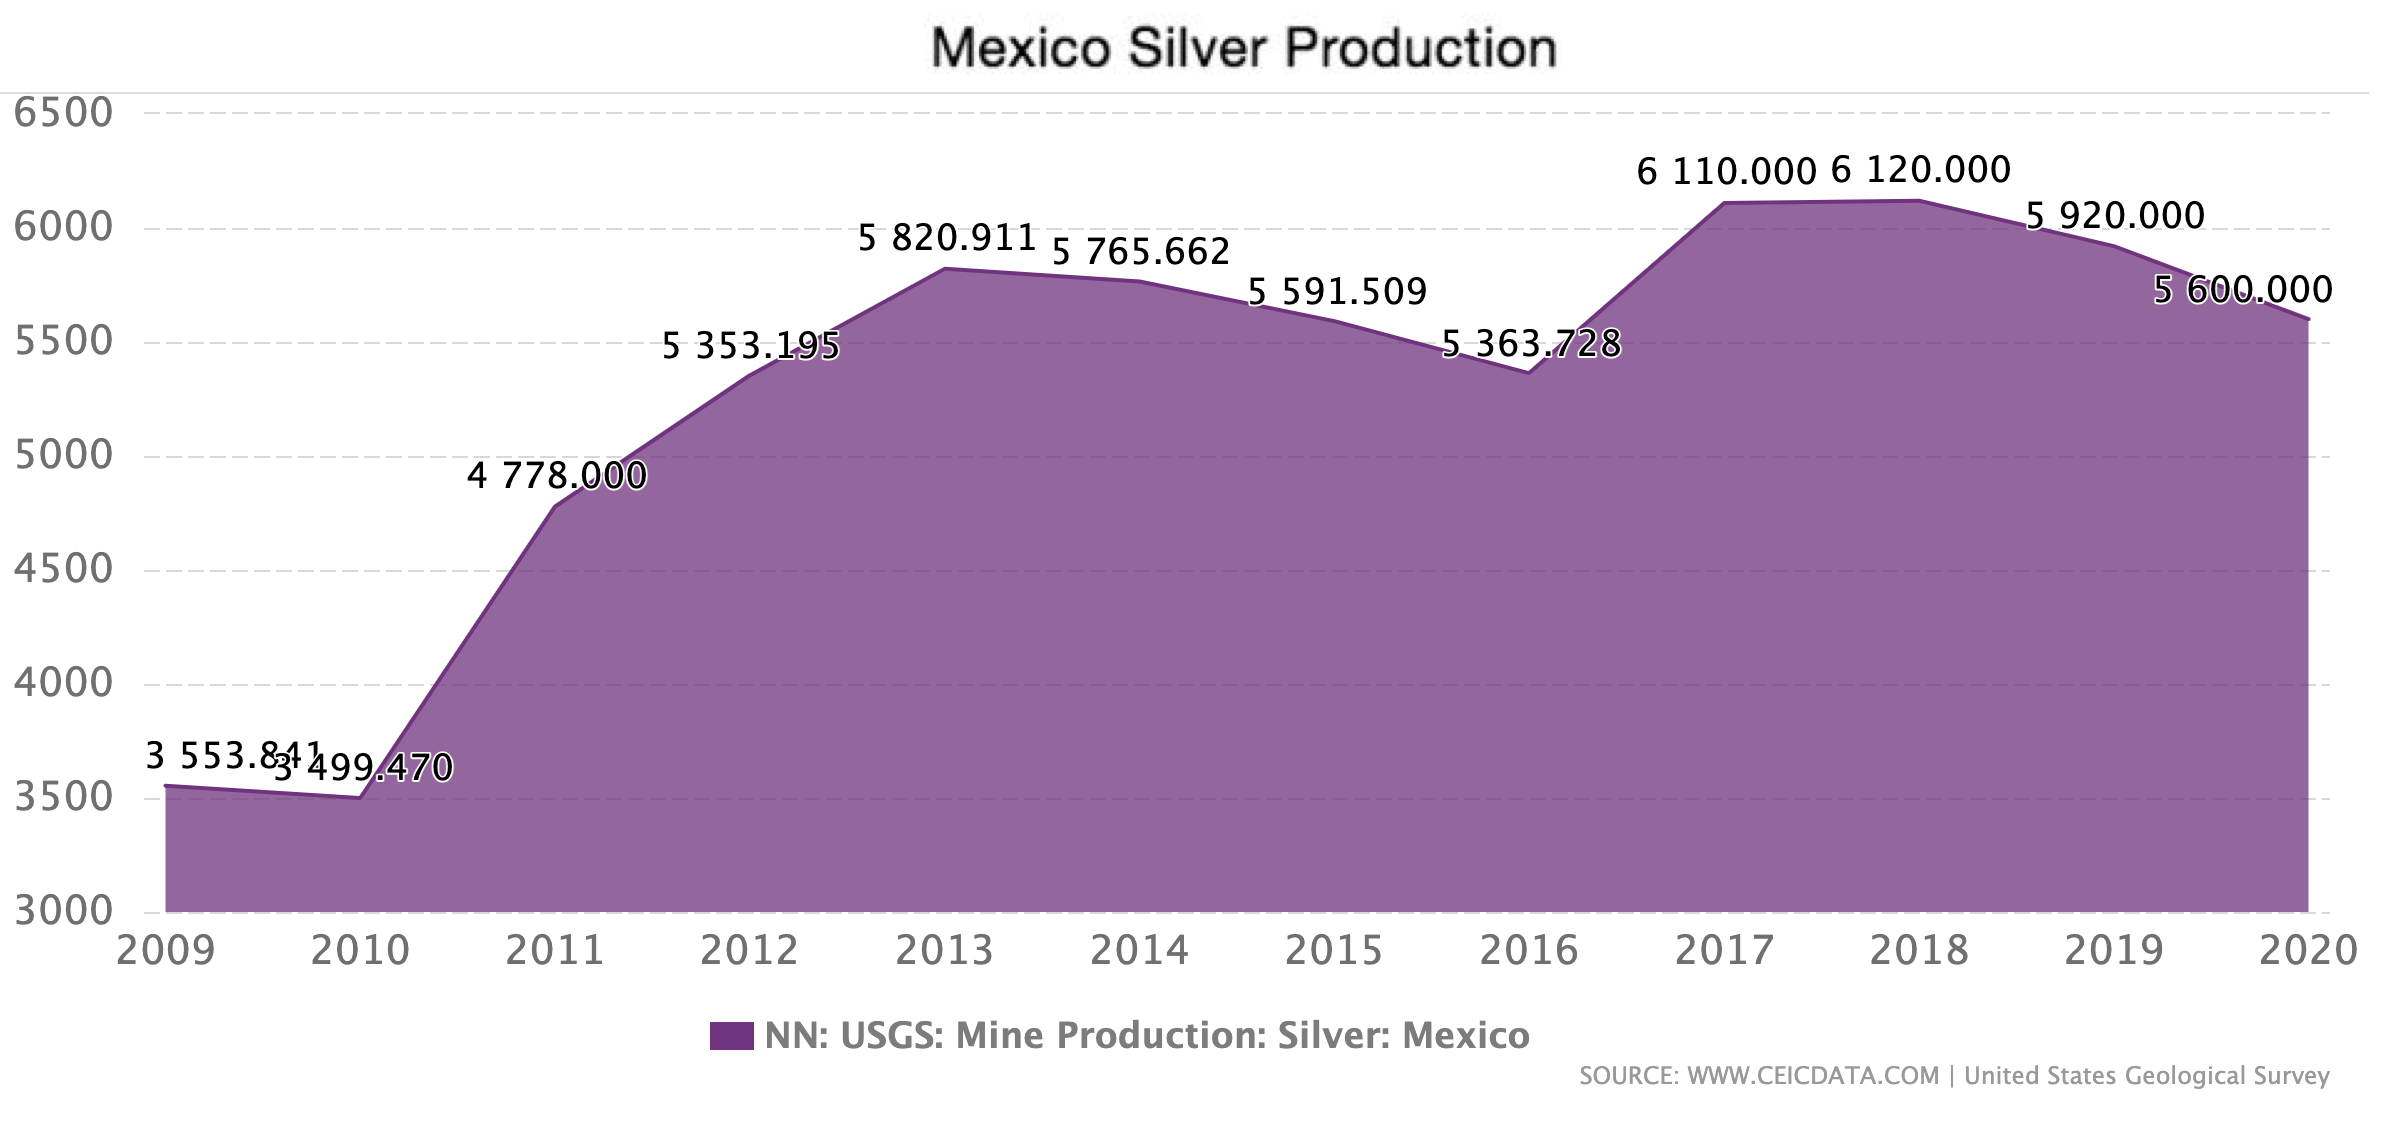 Mexico's Silver Production from 1986 to 2020.